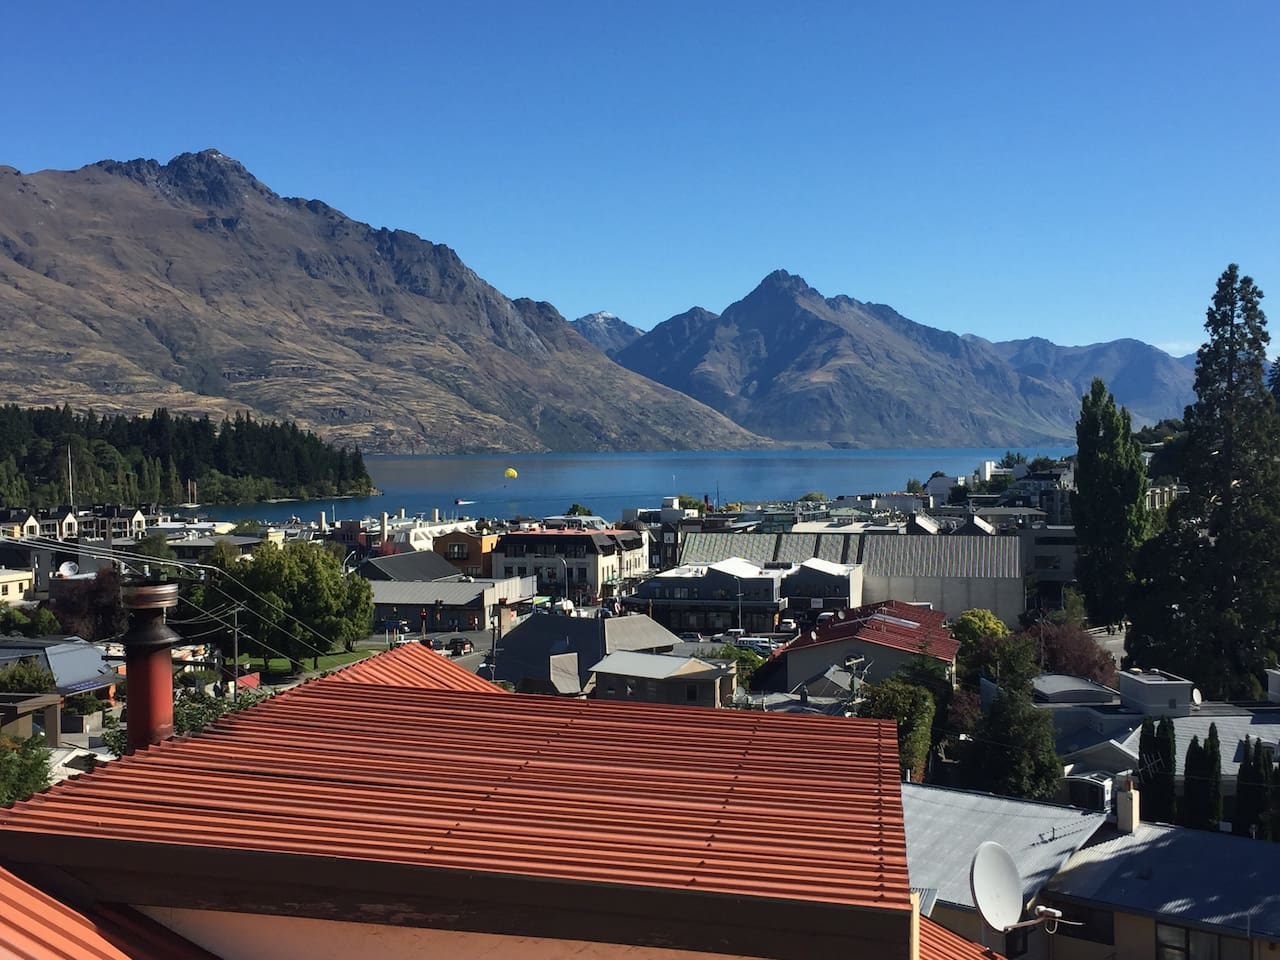 Situated in the heart of Queenstown, enjoy elevated views over the town and up Lake Wakatipu